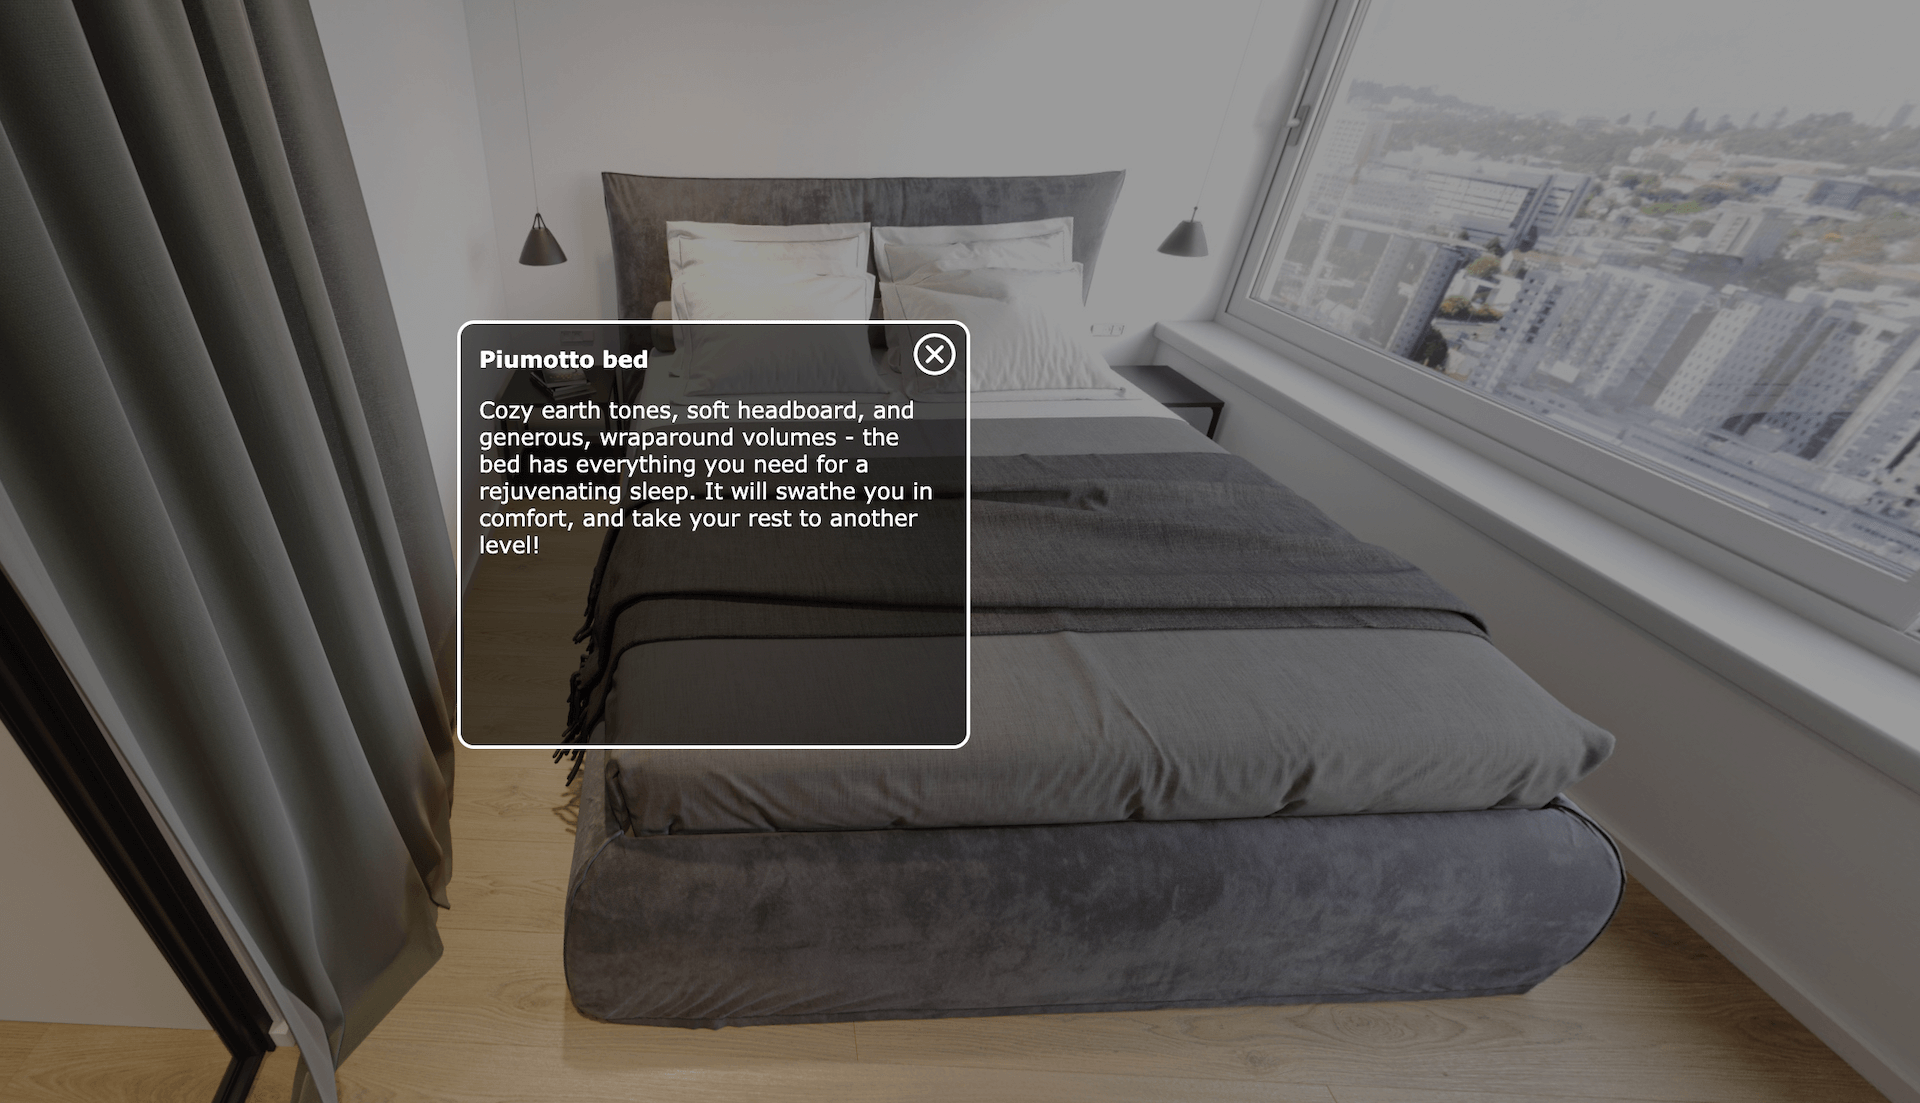 Virtual Apartment Tour with Information Buttons